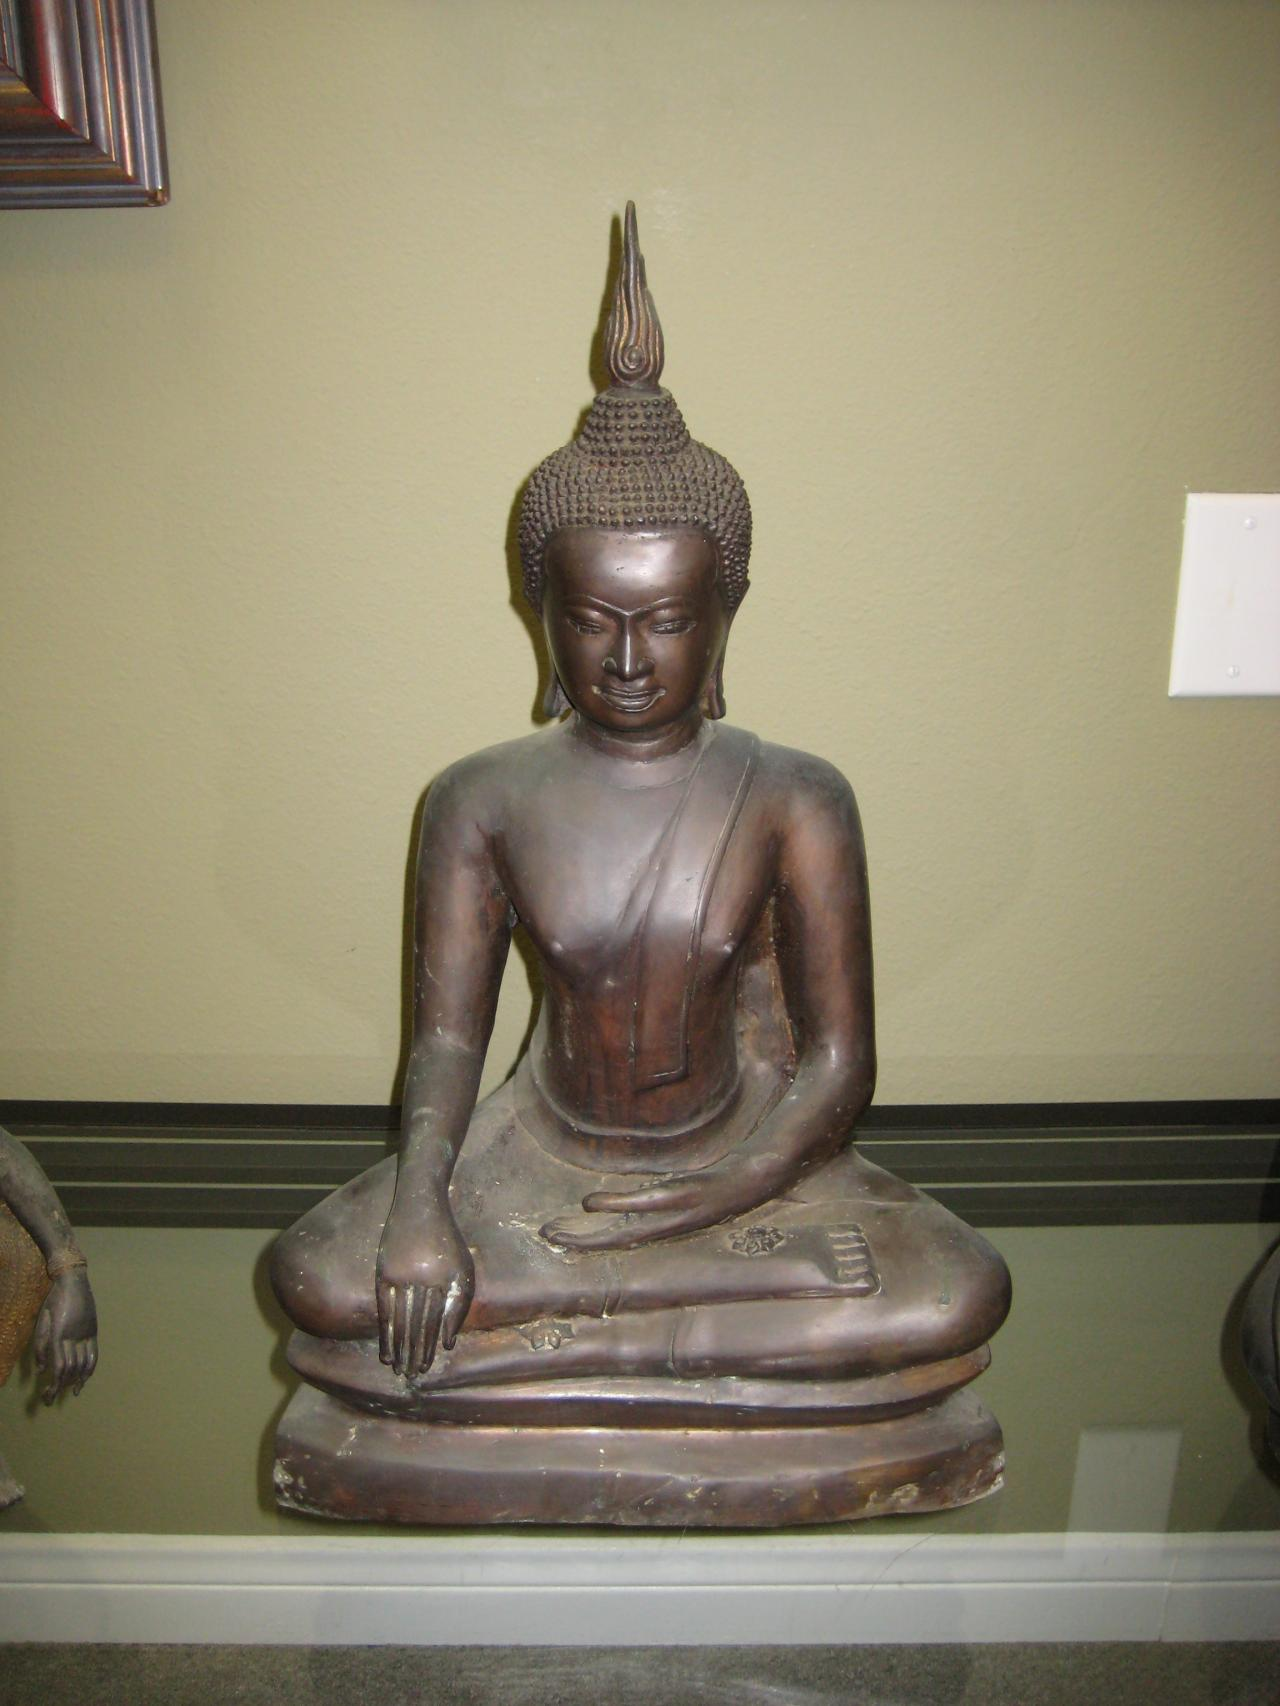 Art Gallery Antique Buddha And Hindu Statues